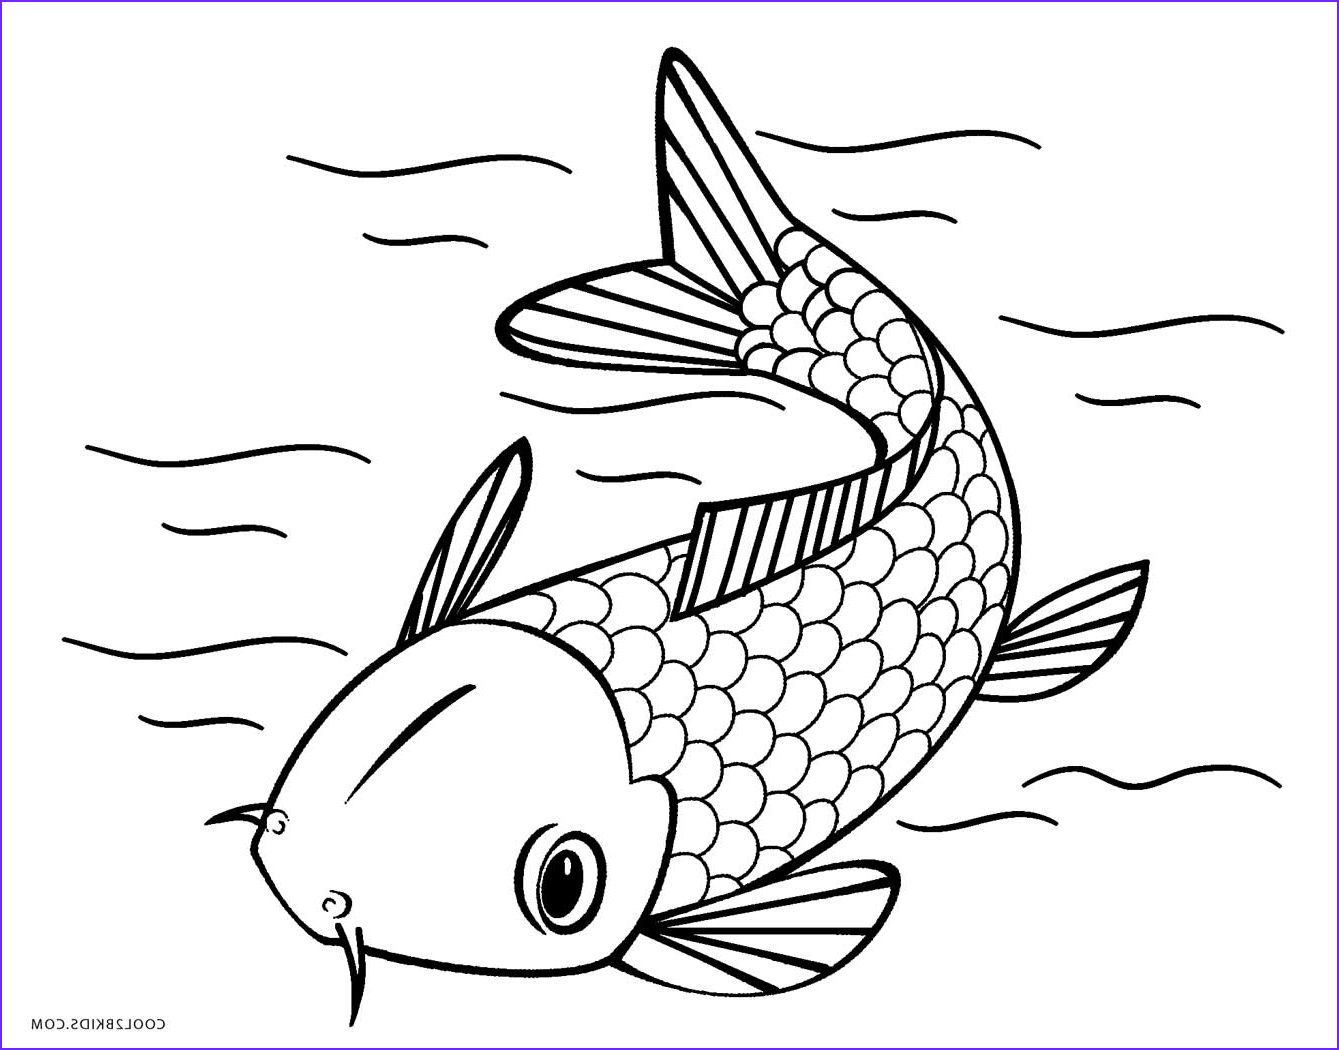 Fish Coloring Book Unique Images Free Printable Fish Coloring Pages for Kids